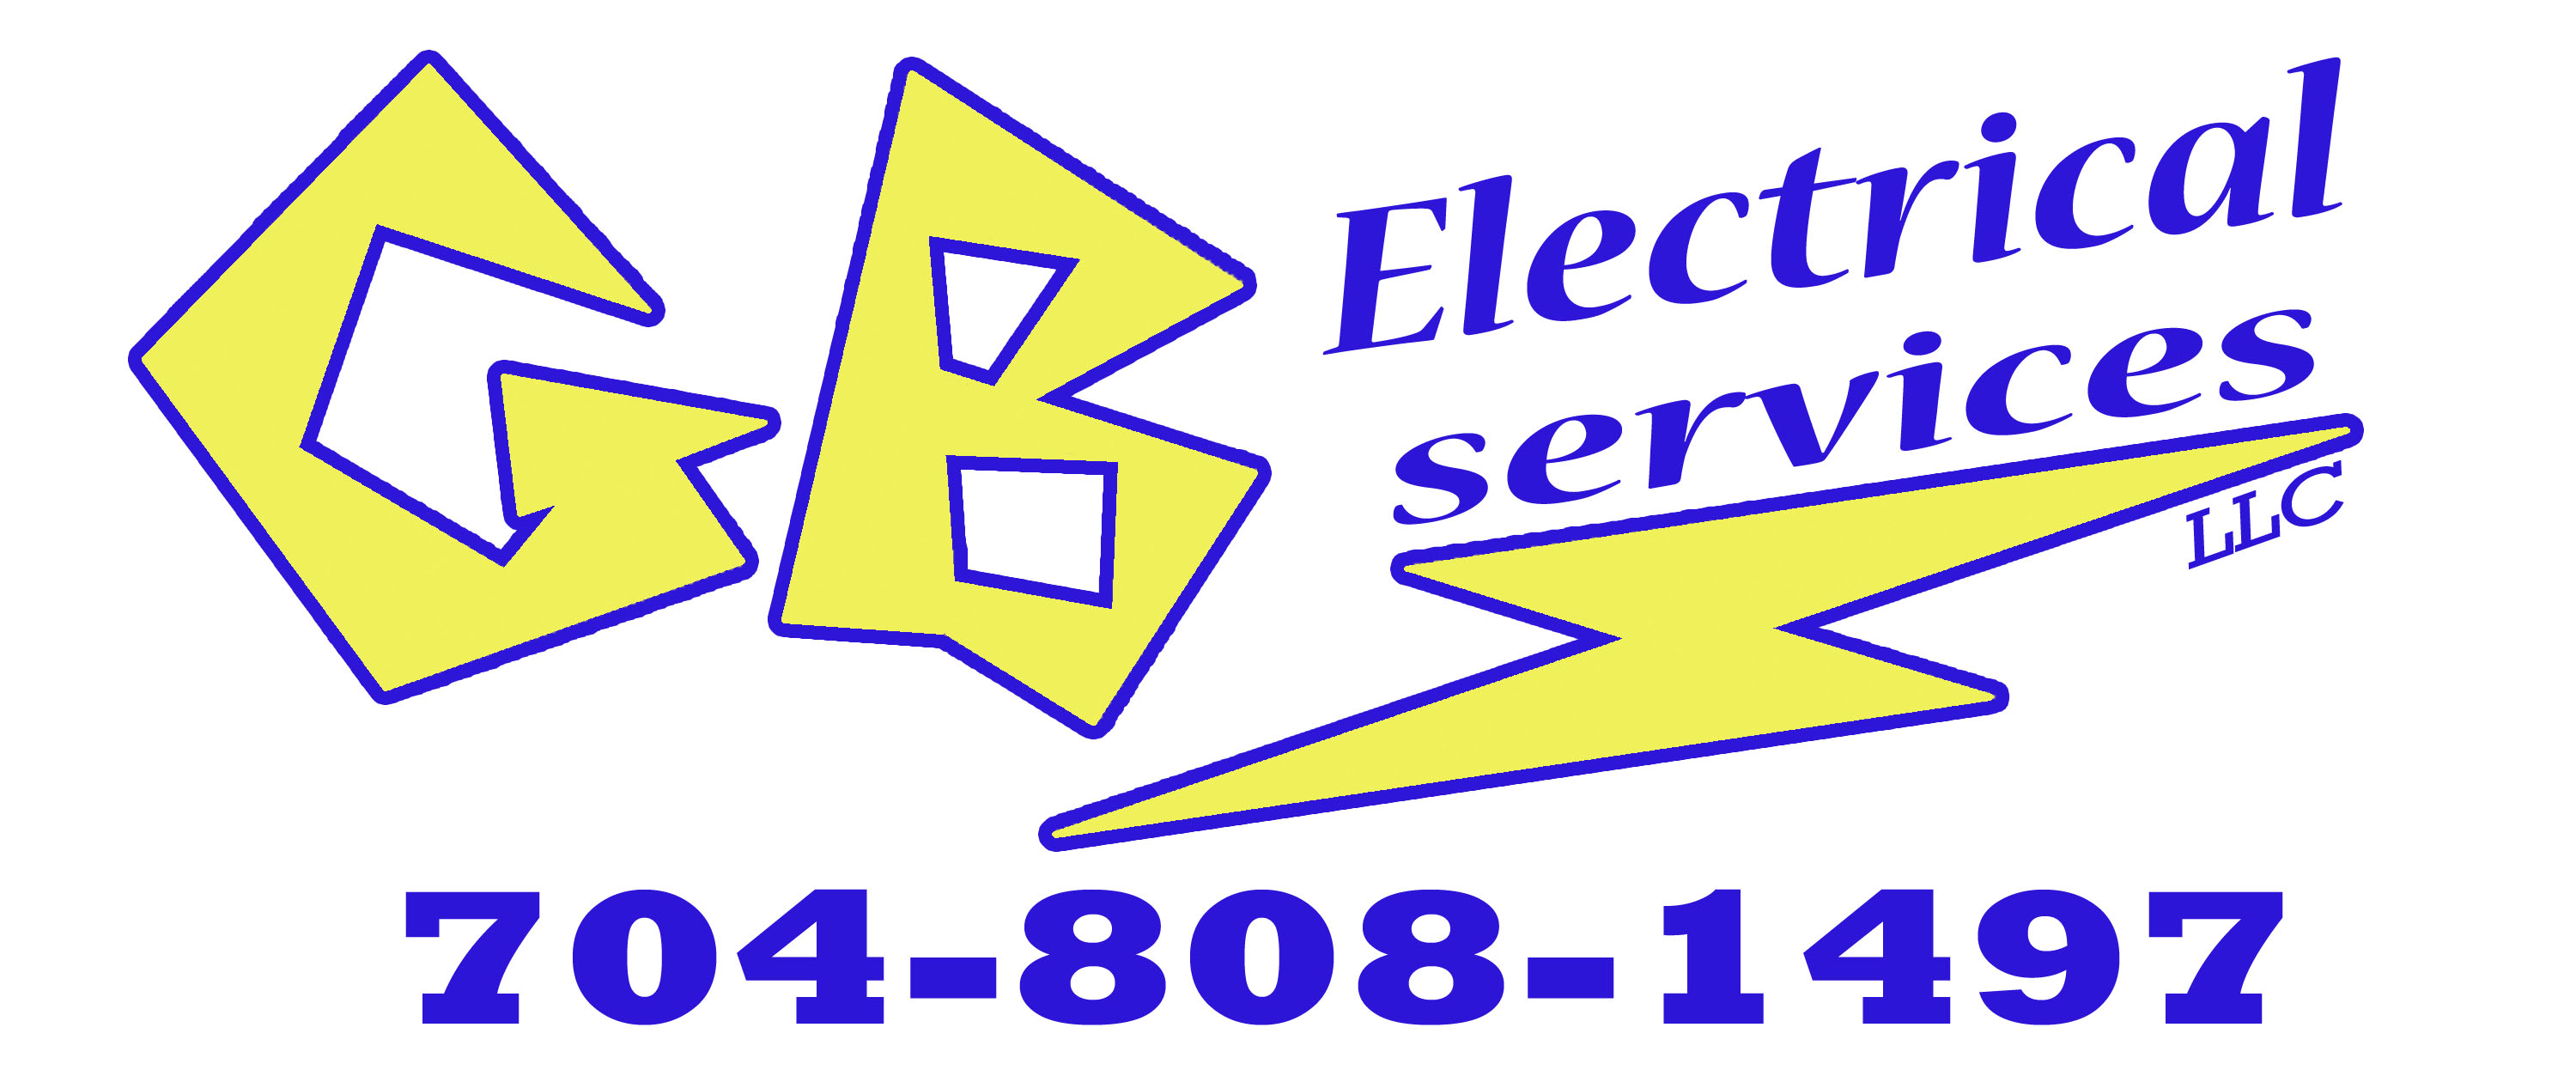 GB Electrical logo no background 1-16-14 copy